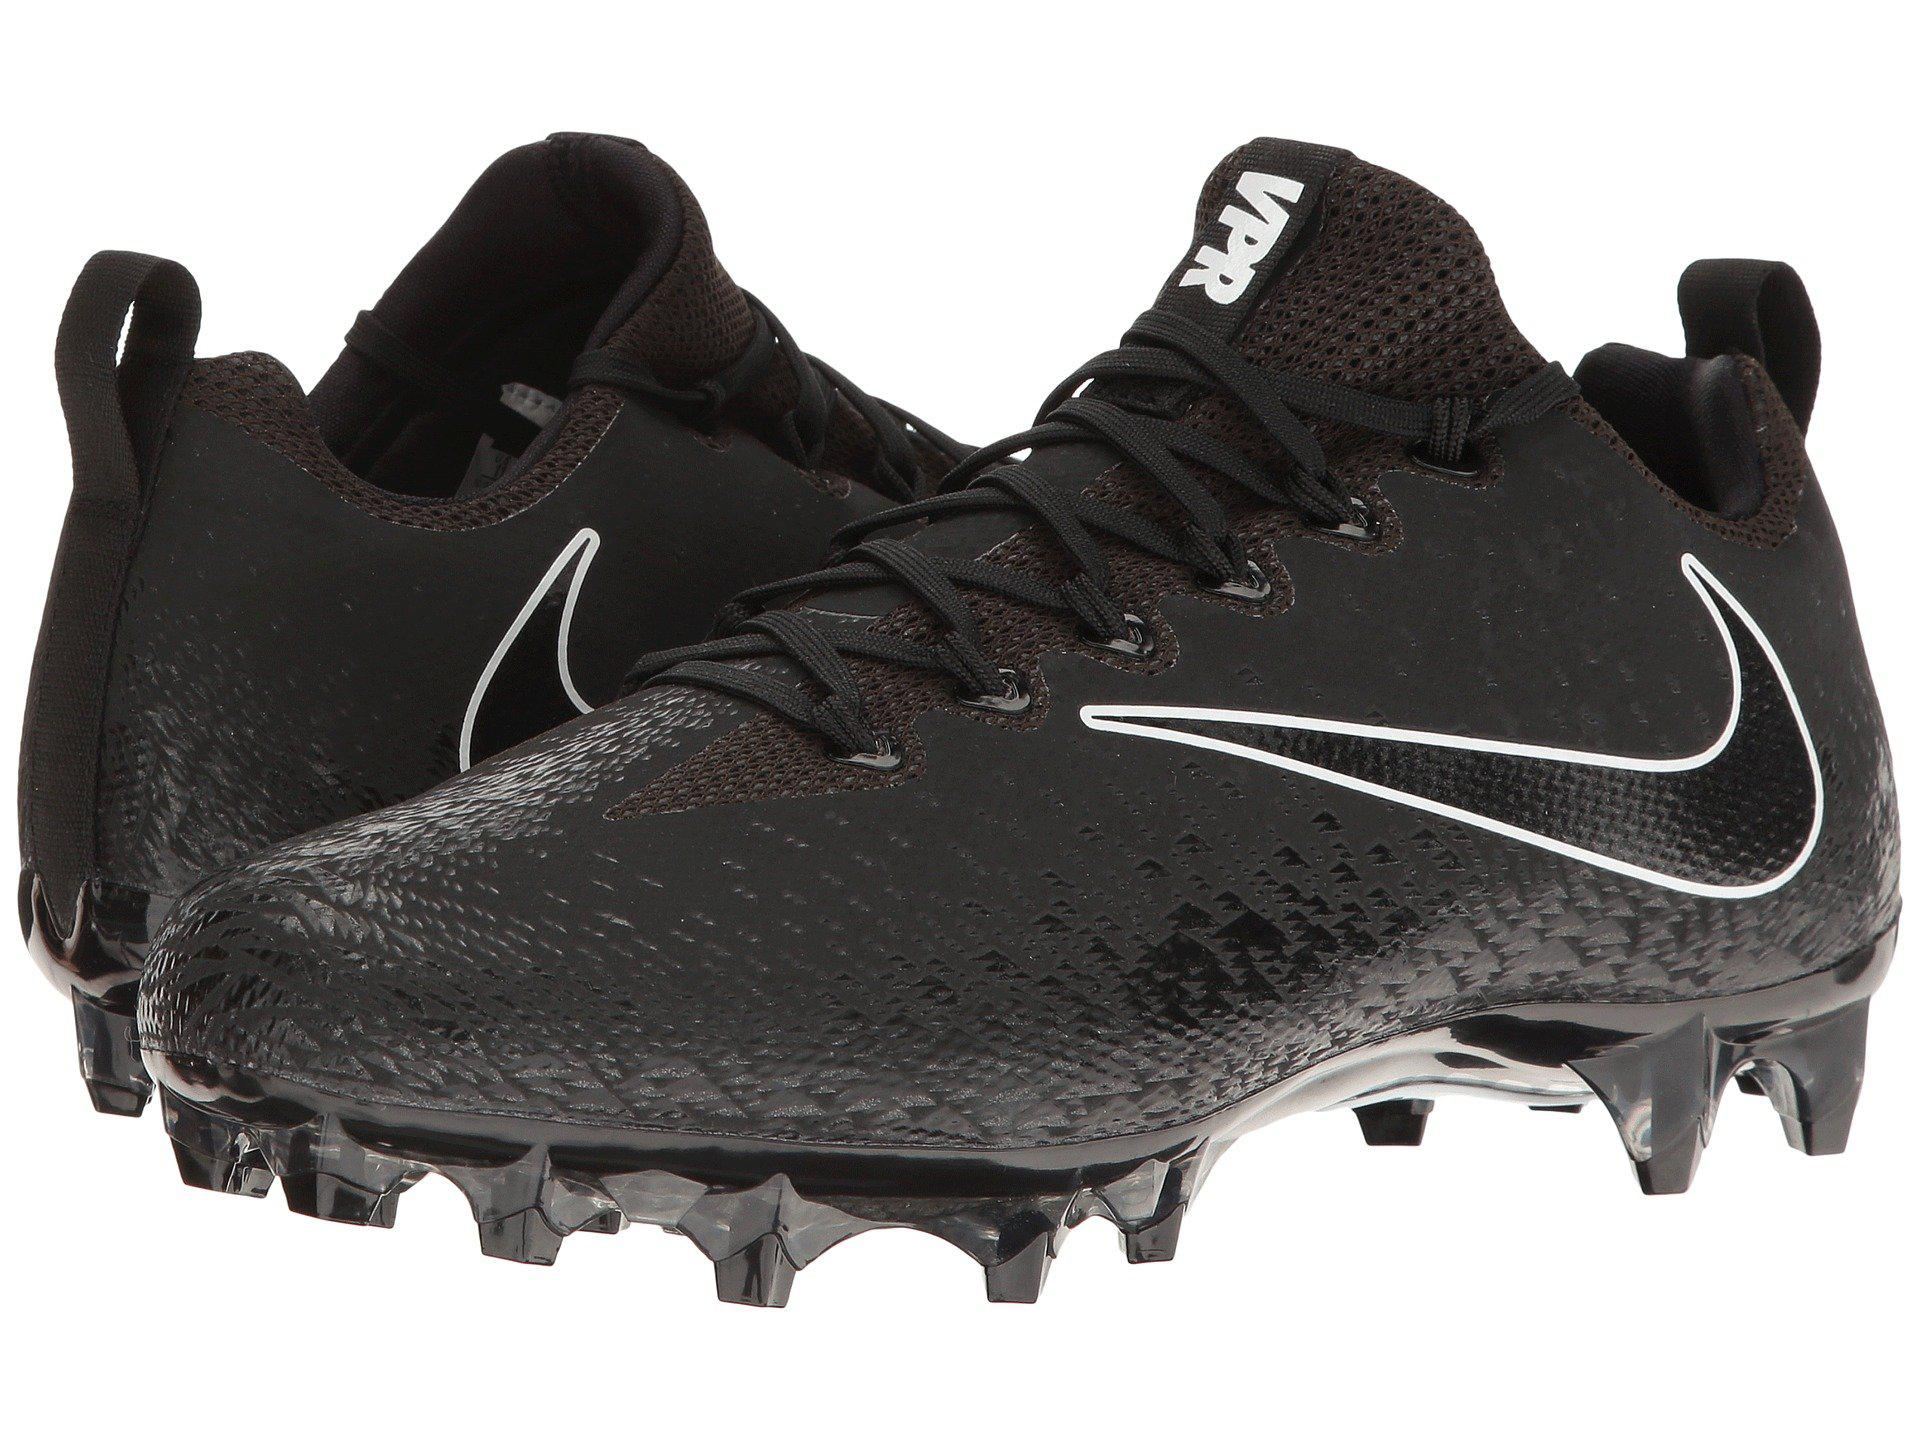 dab7779a690856 Lyst - Nike Vapor Untouchable Pro in Black for Men